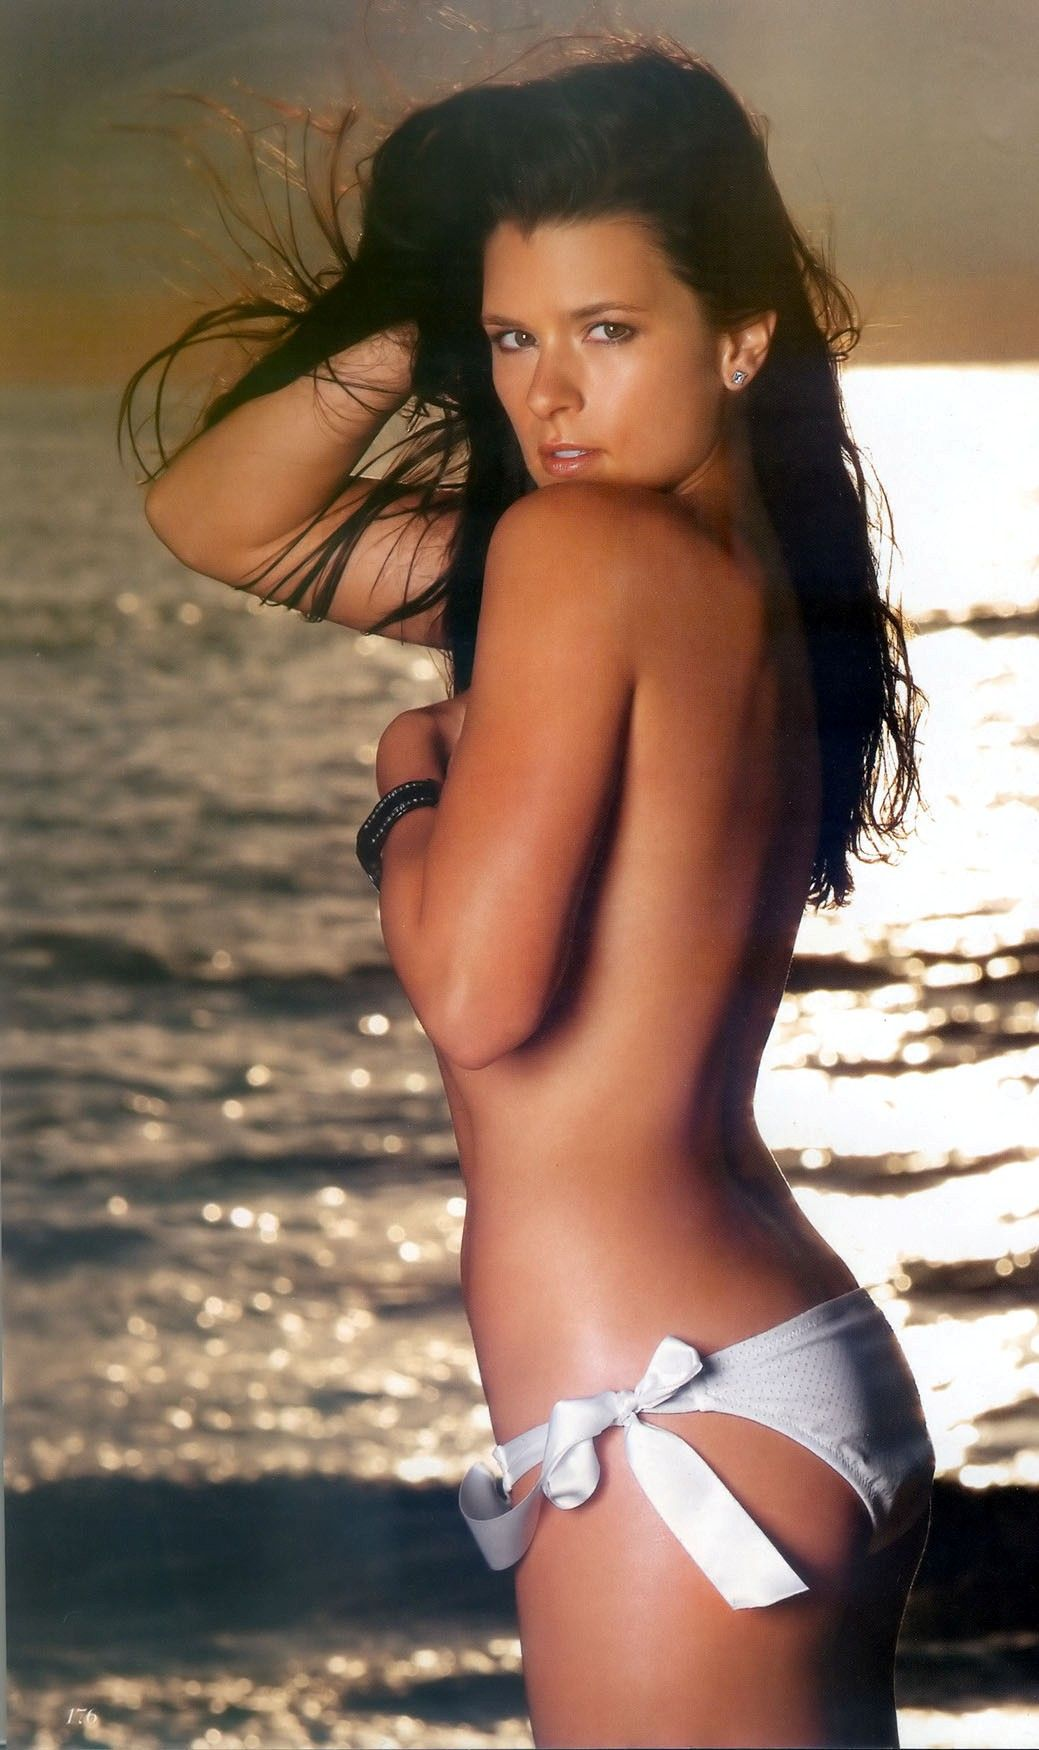 Danica patrick bikini photo shoot